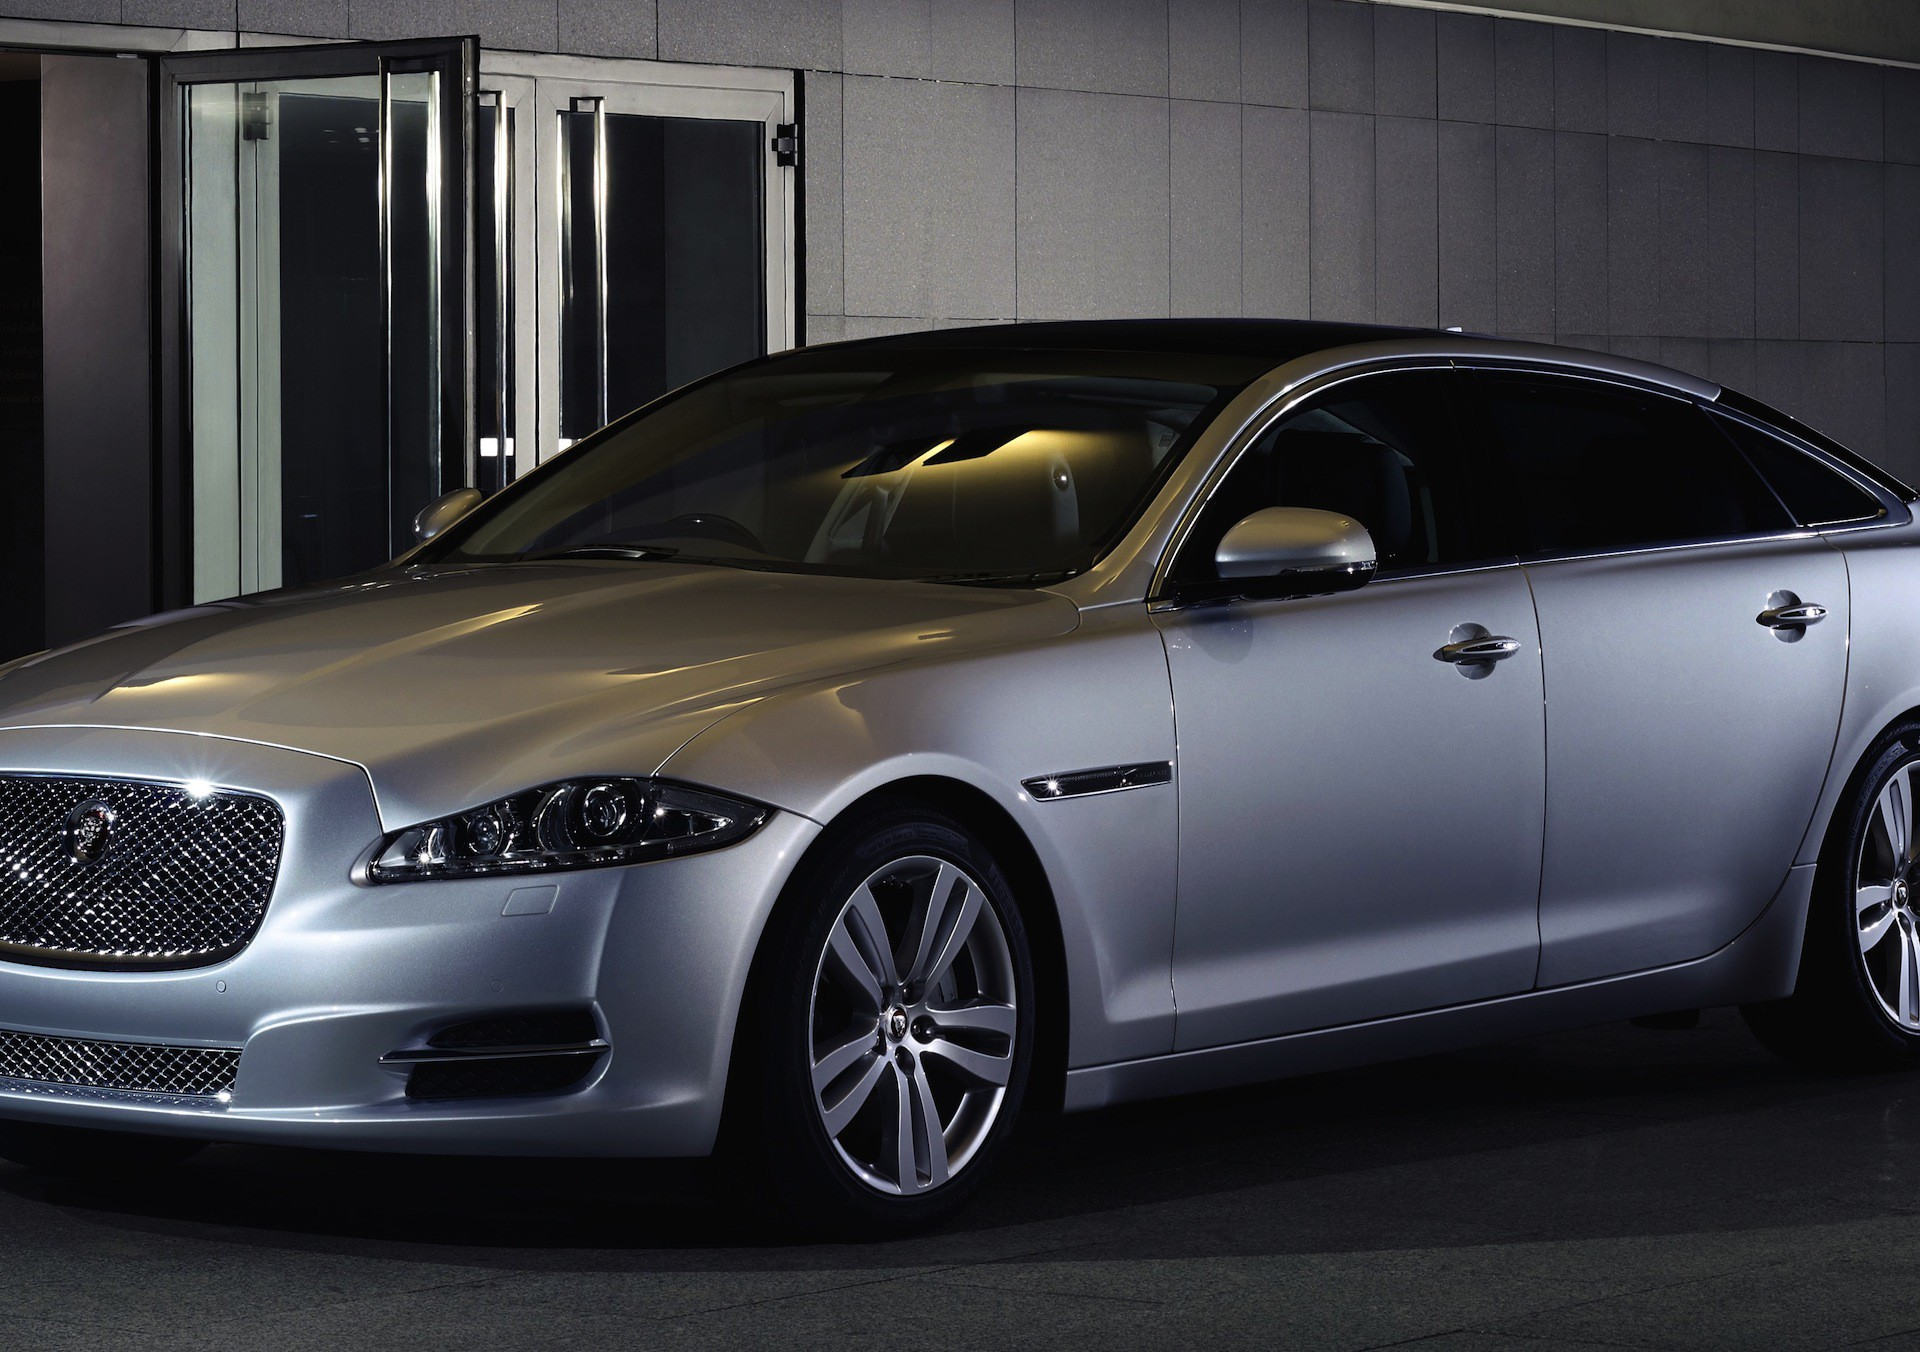 2016 Jaguar xj 6 photo - 1